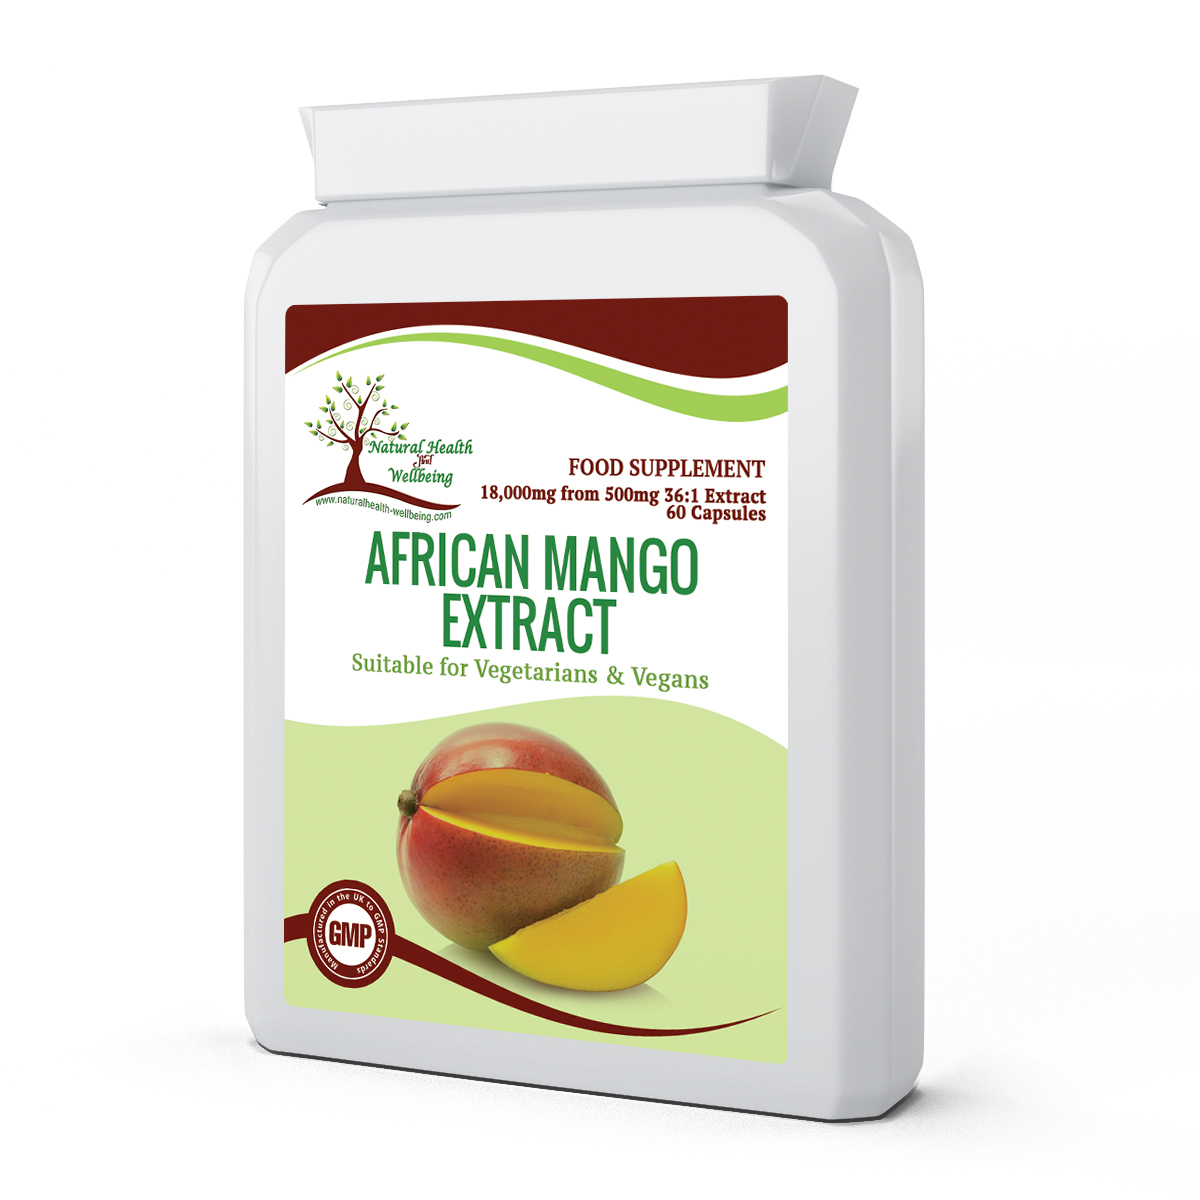 African Mango Extract 18000mg Natural Health Wellbeing